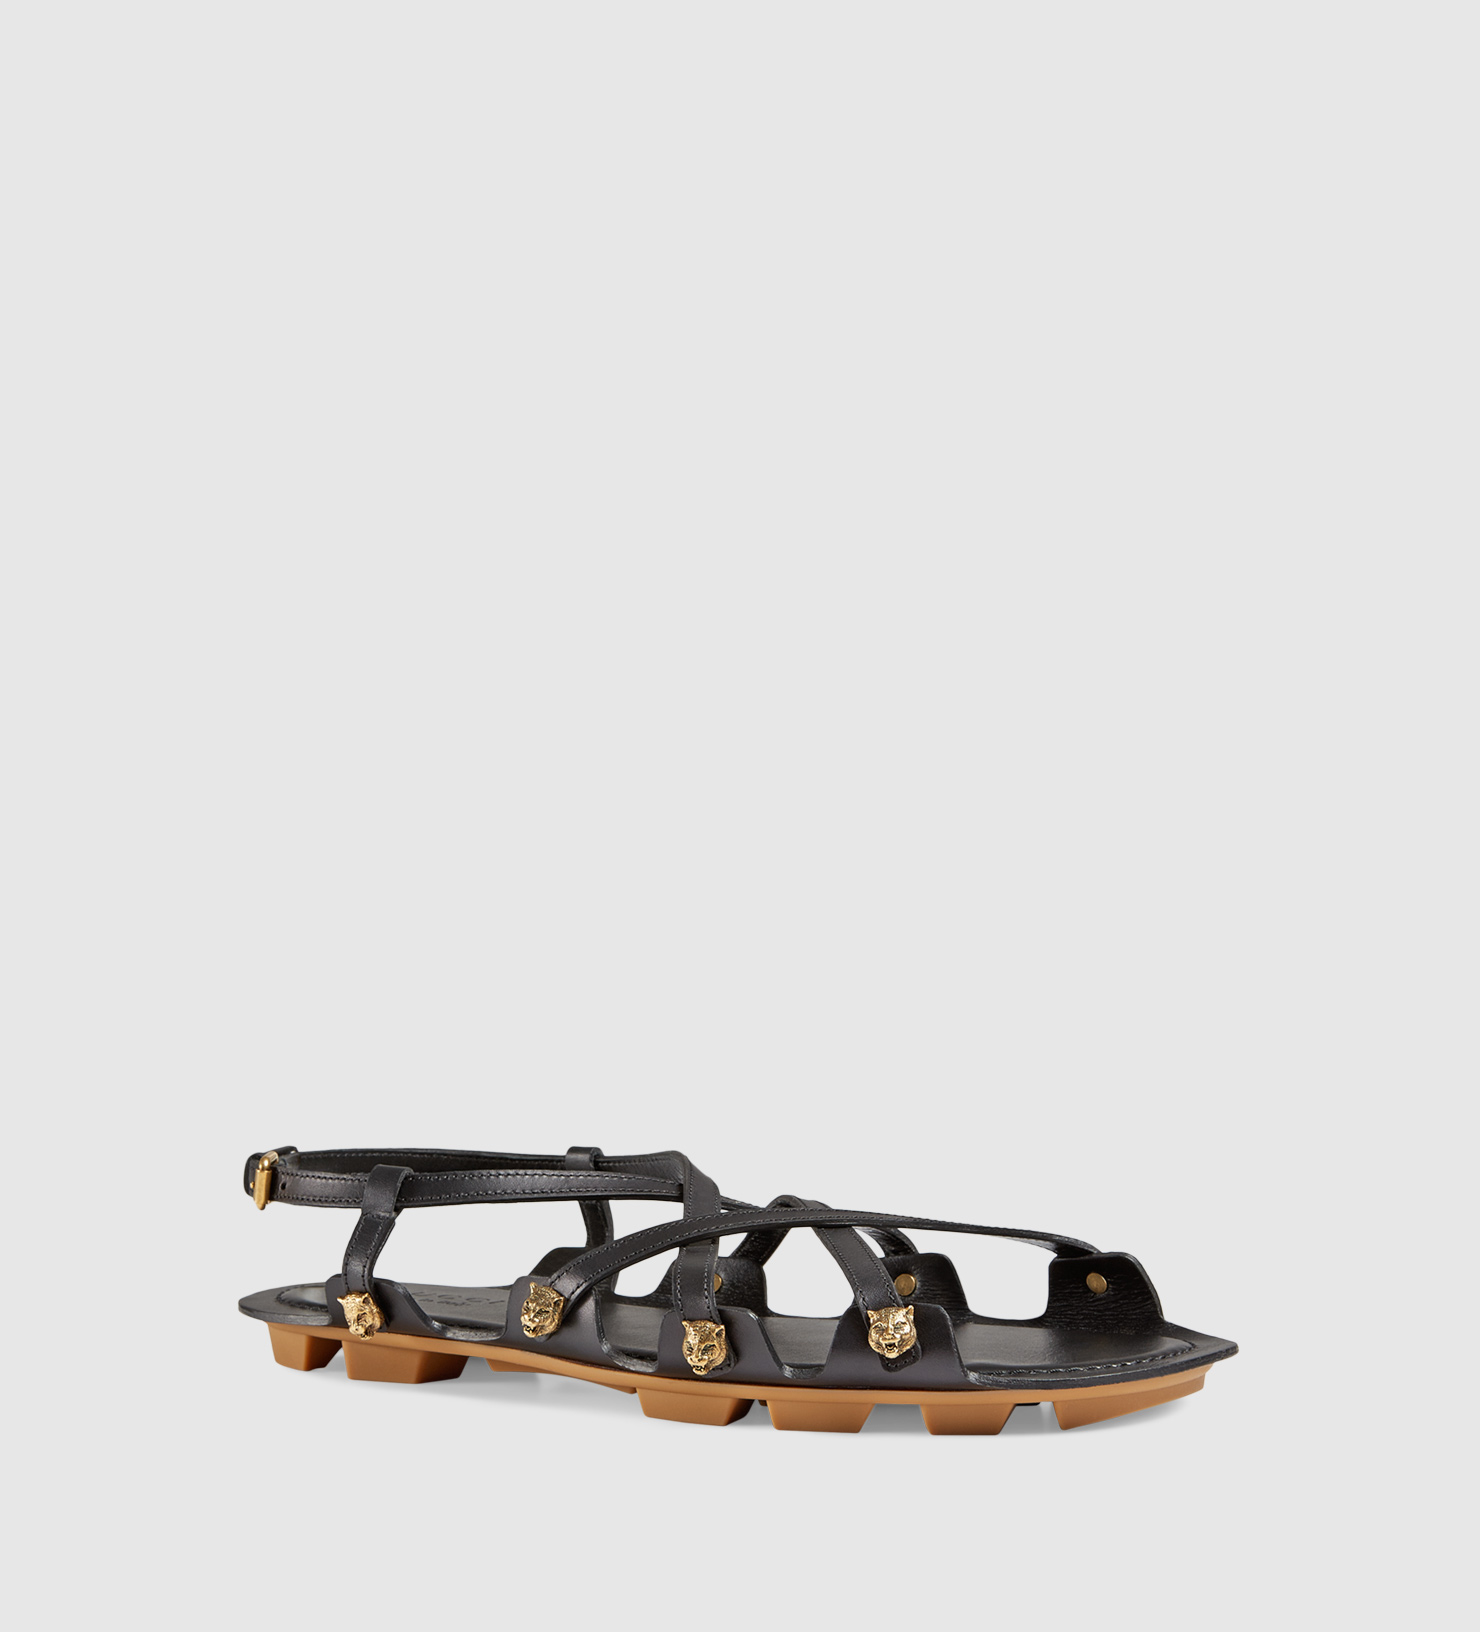 cd82853f156 Gucci Caballero Leather Lug Sole Sandal in Brown for Men - Lyst